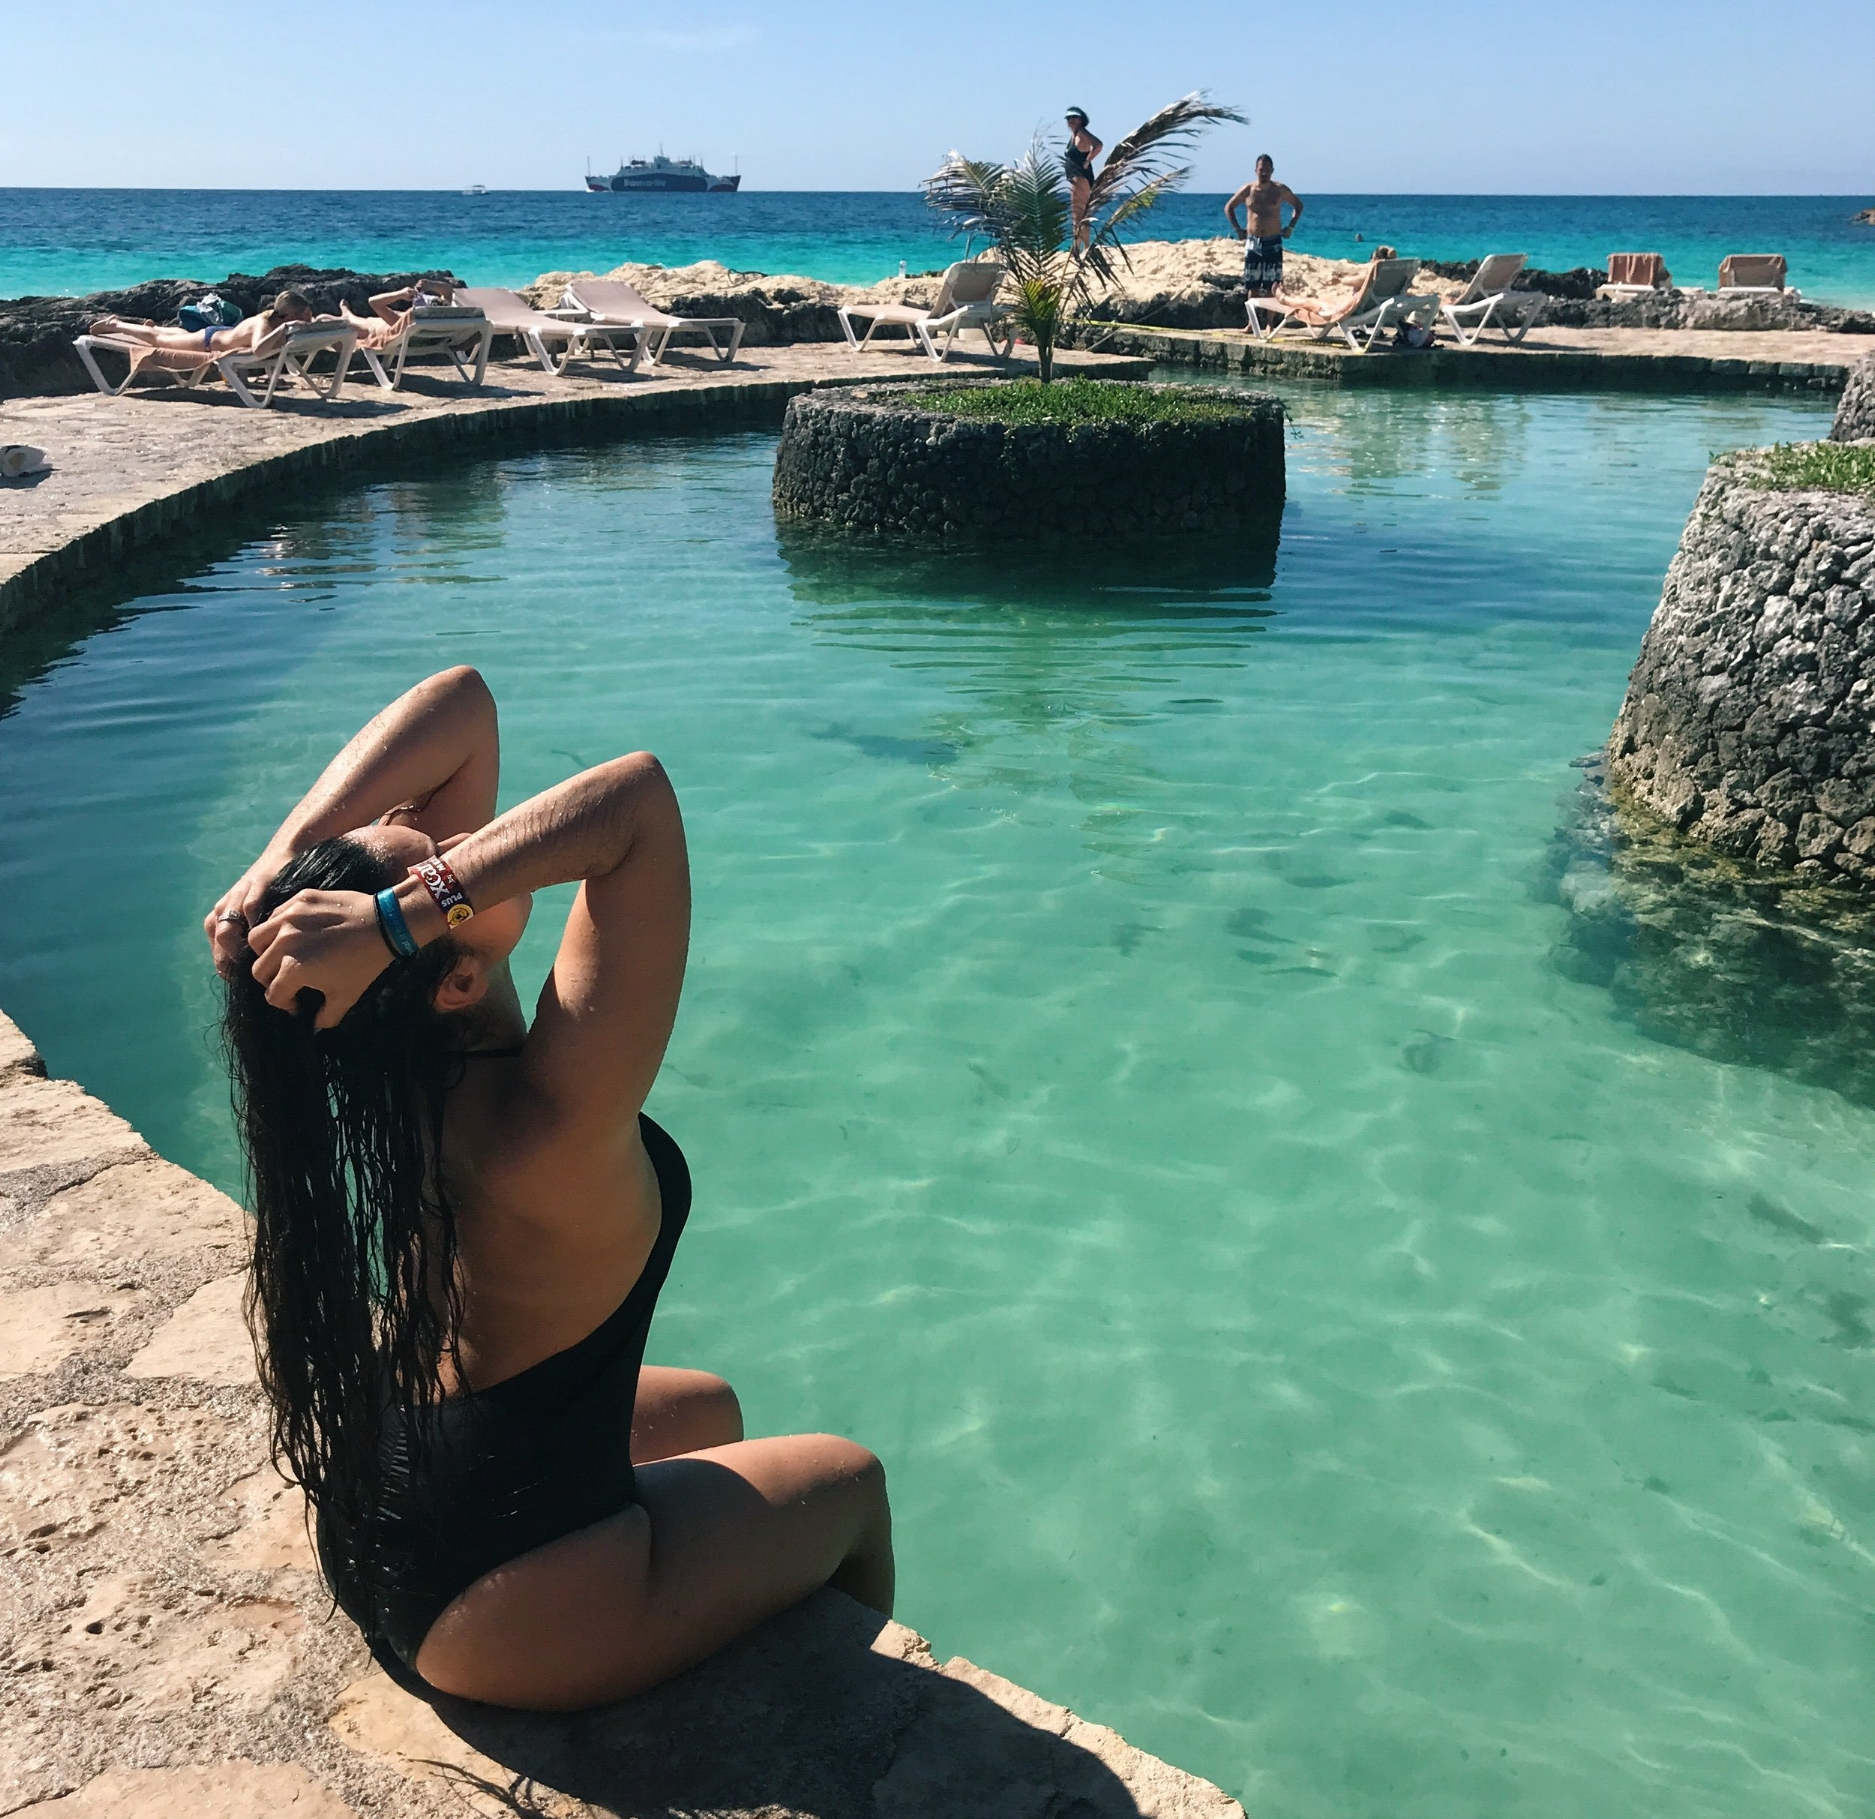 TOP 8 THINGS TO SEE & DO IN RIVIERA MAYA, MEXICO - Explore ancient ruins, swim in underground rivers - Here are the top 8 things to see & do.